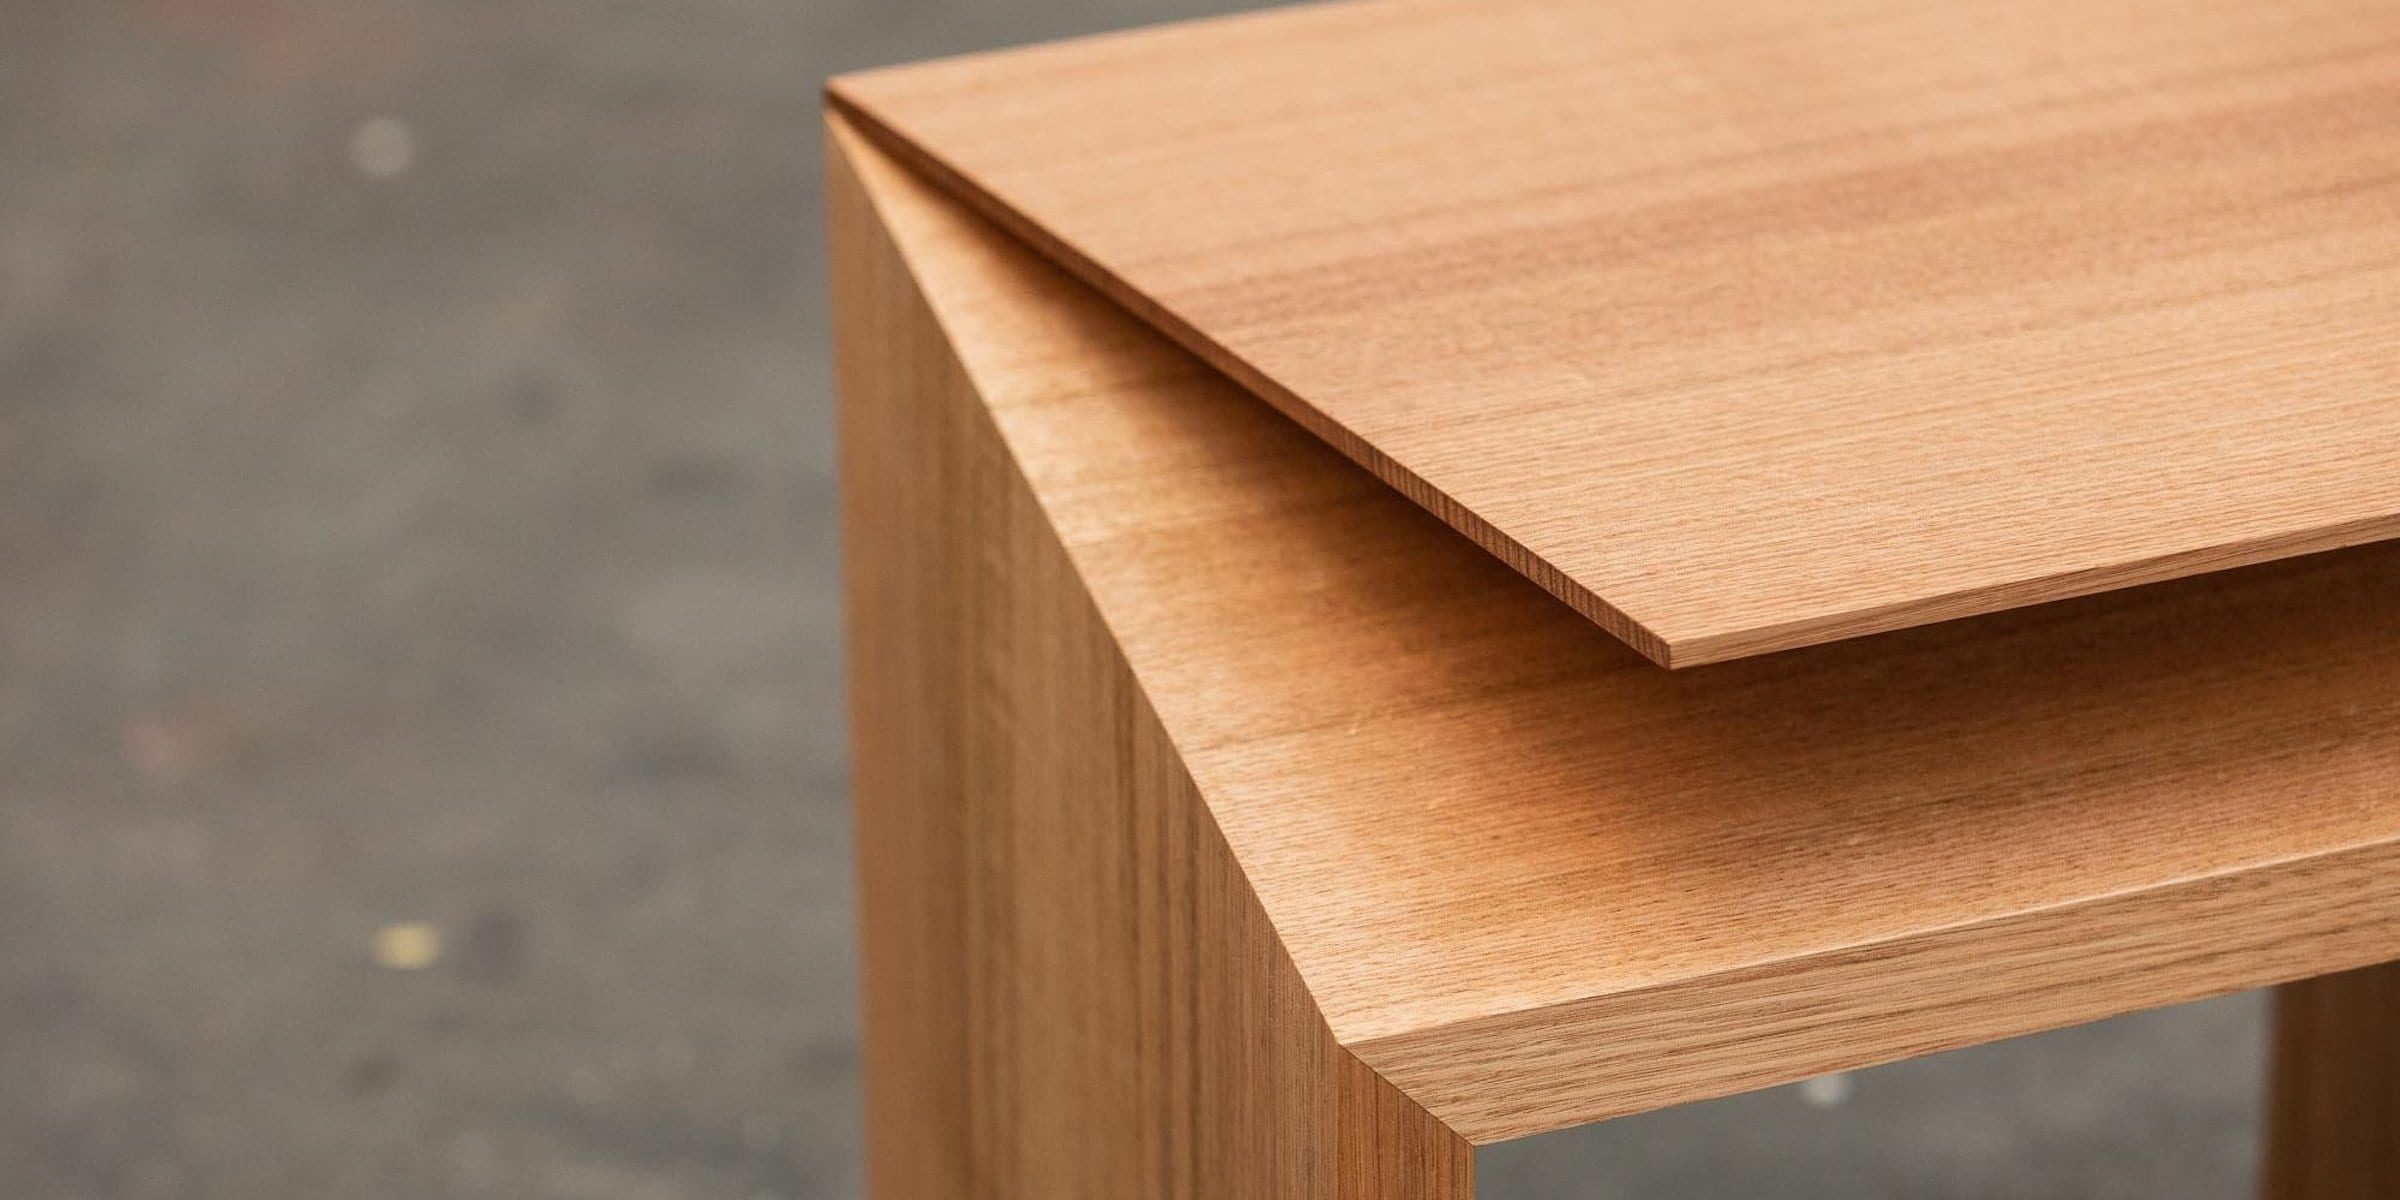 Tasmanian Oak stool by Simon Ancher Studio